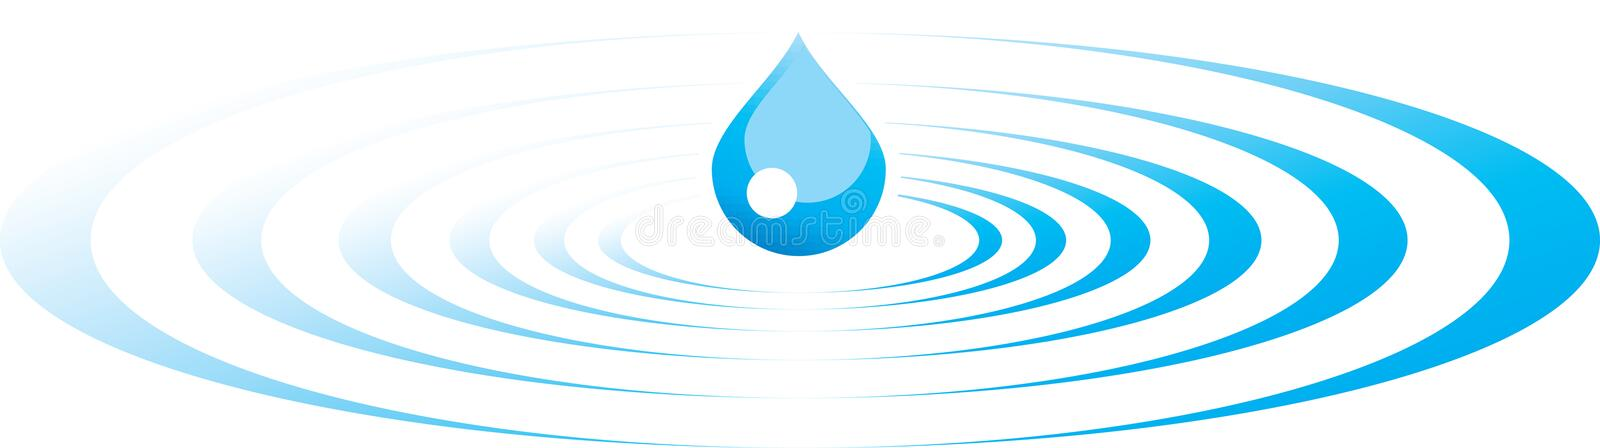 Drop and ripples royalty free illustration